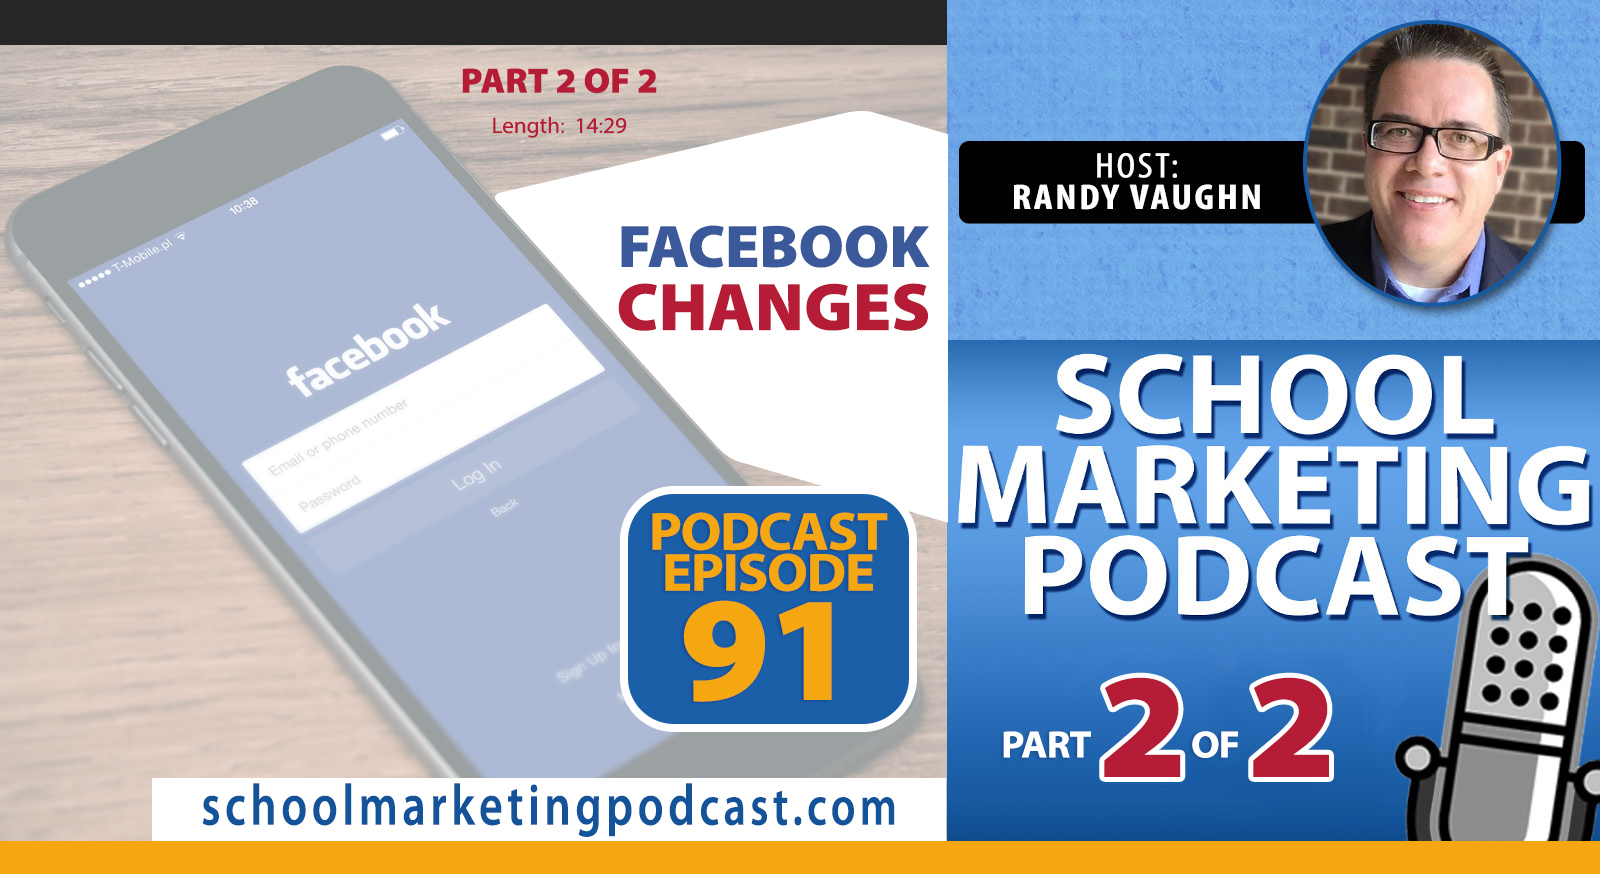 Panic or Peace (Part 2 of 2): How to React to the Latest Facebook Changes for Your School - (School Marketing Podcast #91)